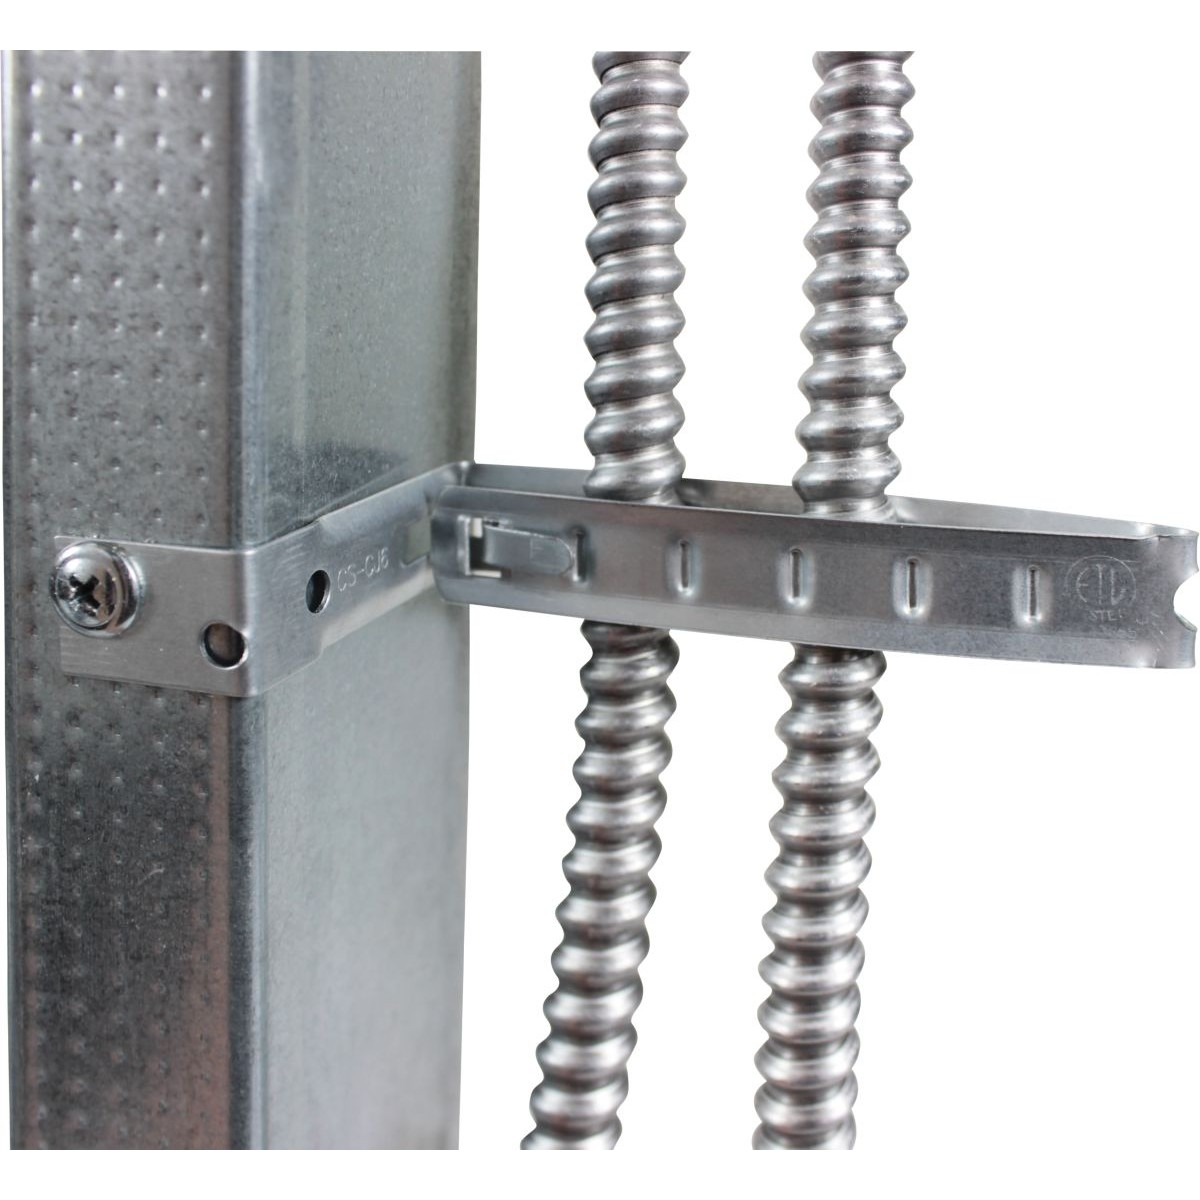 STUD MOUNTING CABLE SUPPORT - Conduit Supports, Straps, Clamps ...